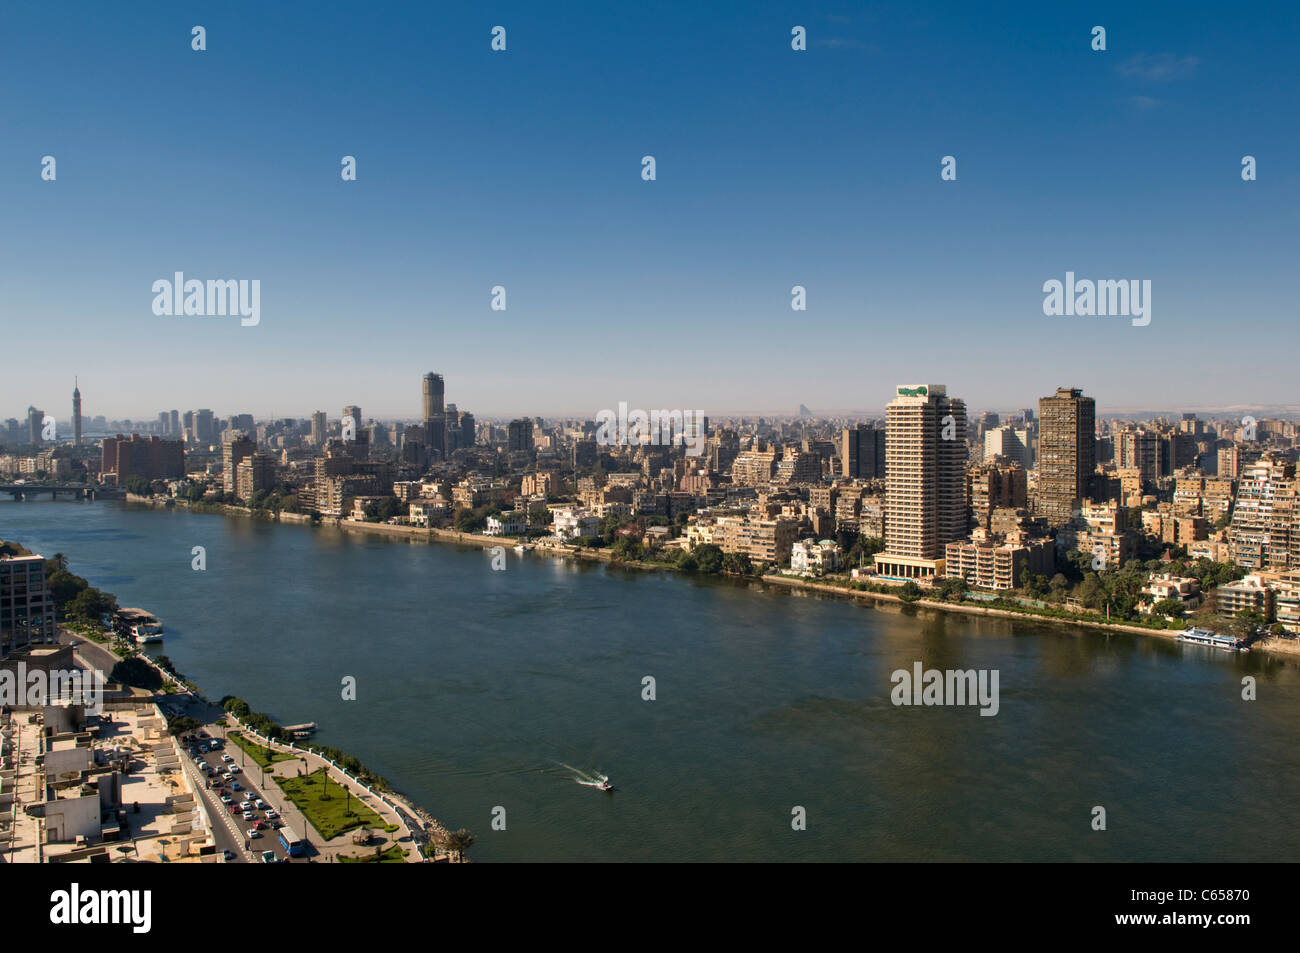 Nil et la ville du Caire Egypte Photo Stock